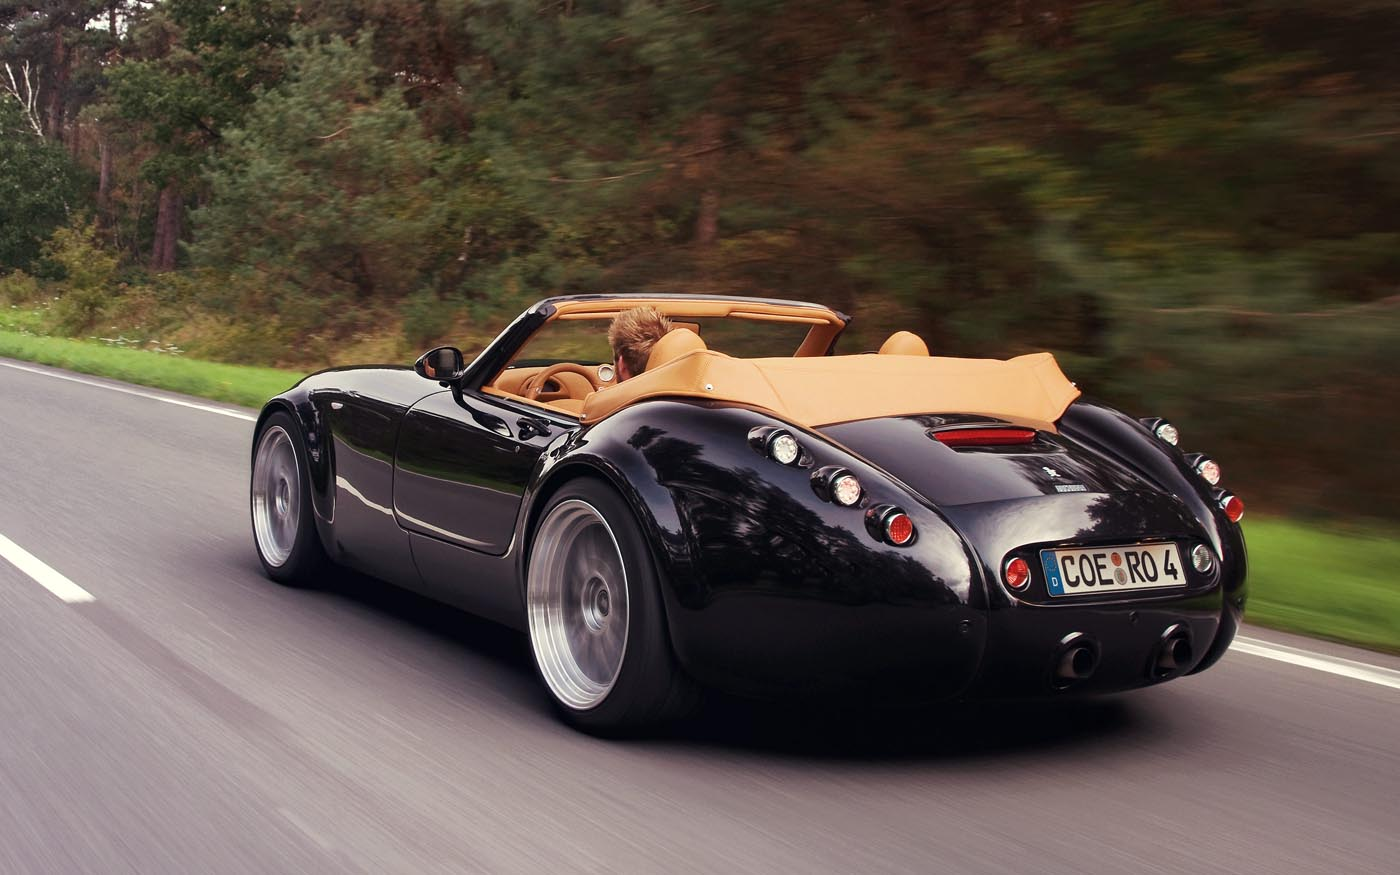 wiesmann mf4 roadster 2010 2011 2012 2013 2014 2015 2016 autoevolution. Black Bedroom Furniture Sets. Home Design Ideas